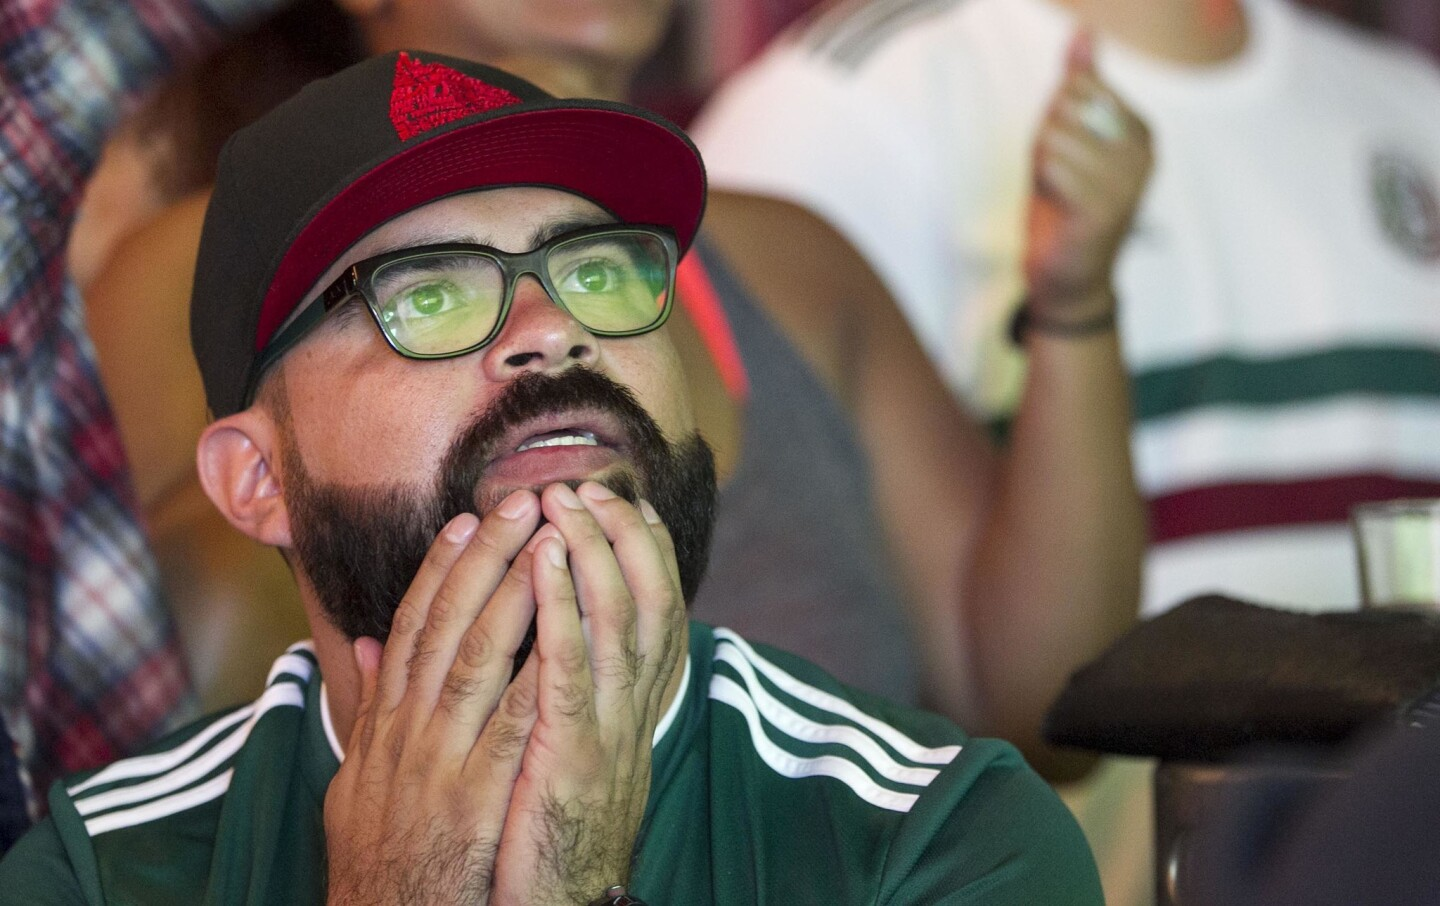 Elbert Gom, from Chula Vista watched the second half of the game.